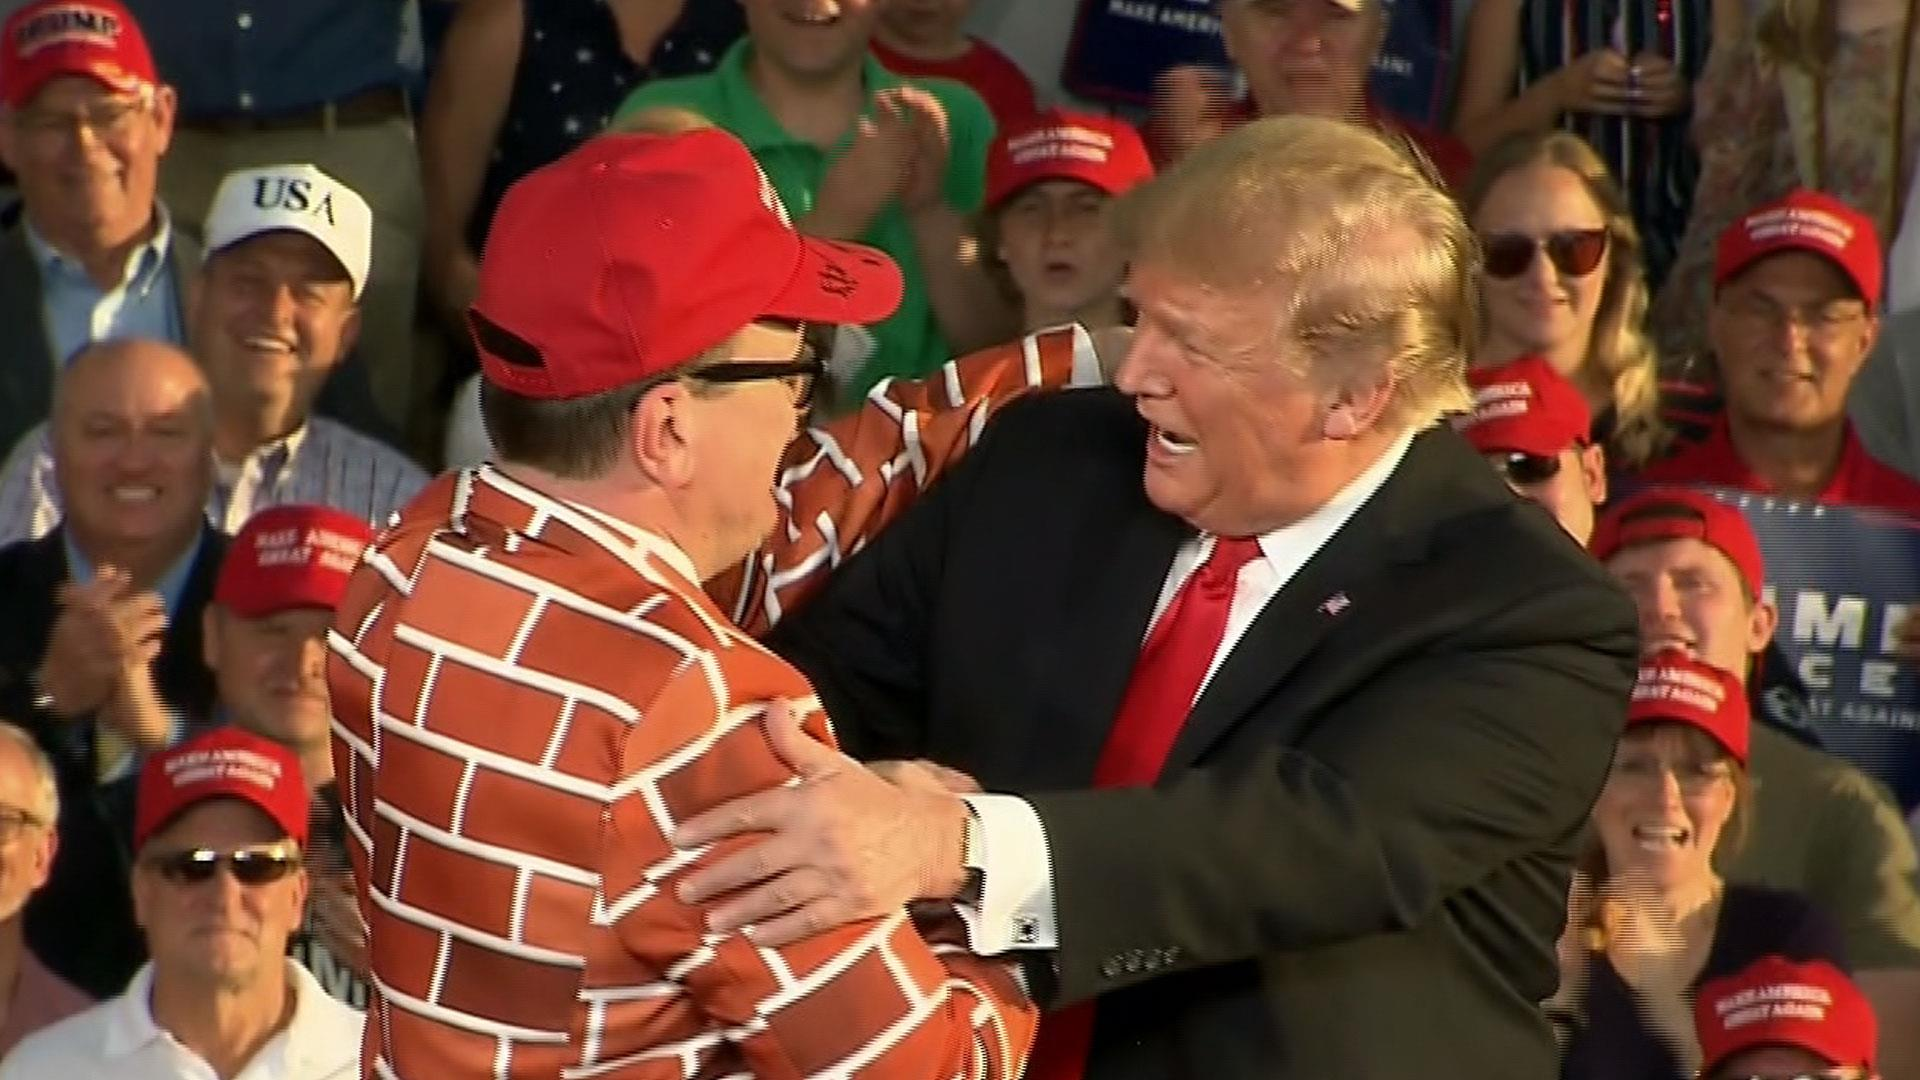 Trump invites man dressed as border wall on stage at campaign rally